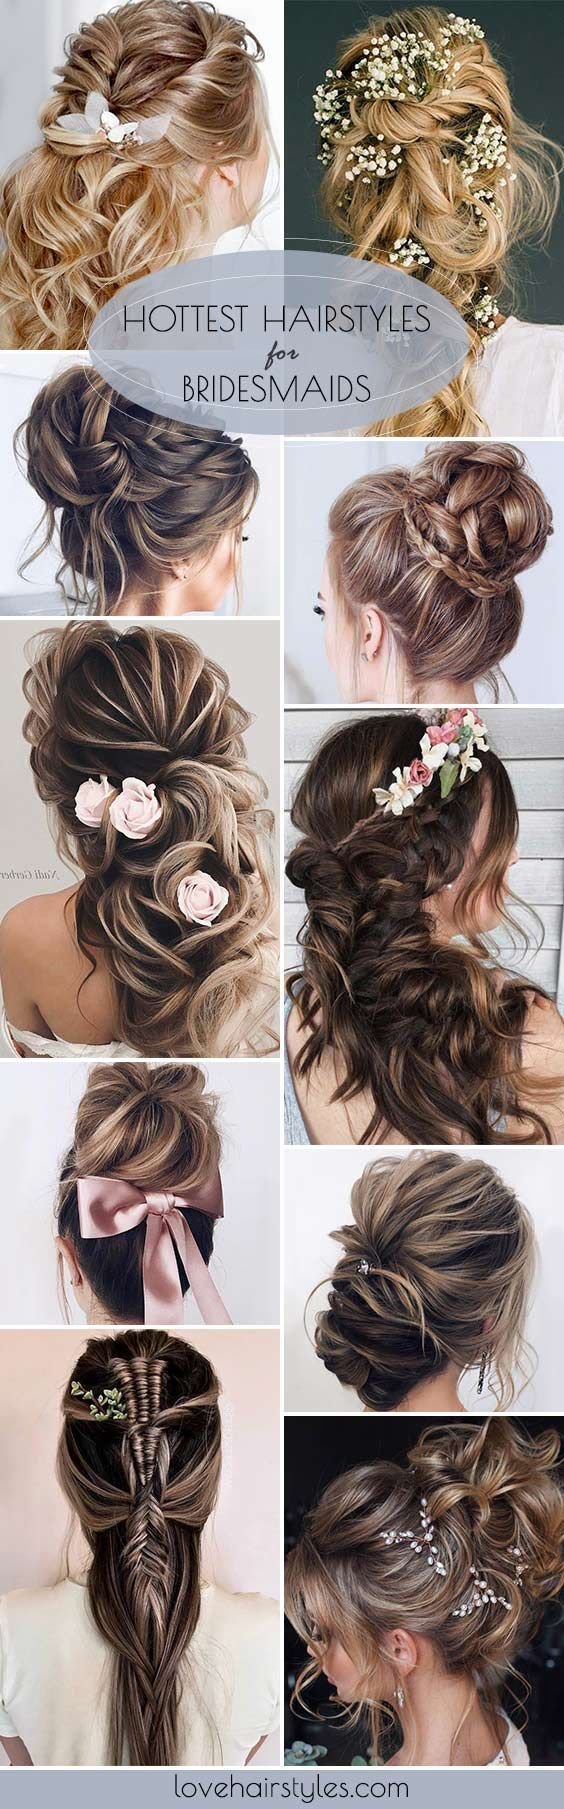 best belle coifure images on pinterest bridal hairstyles